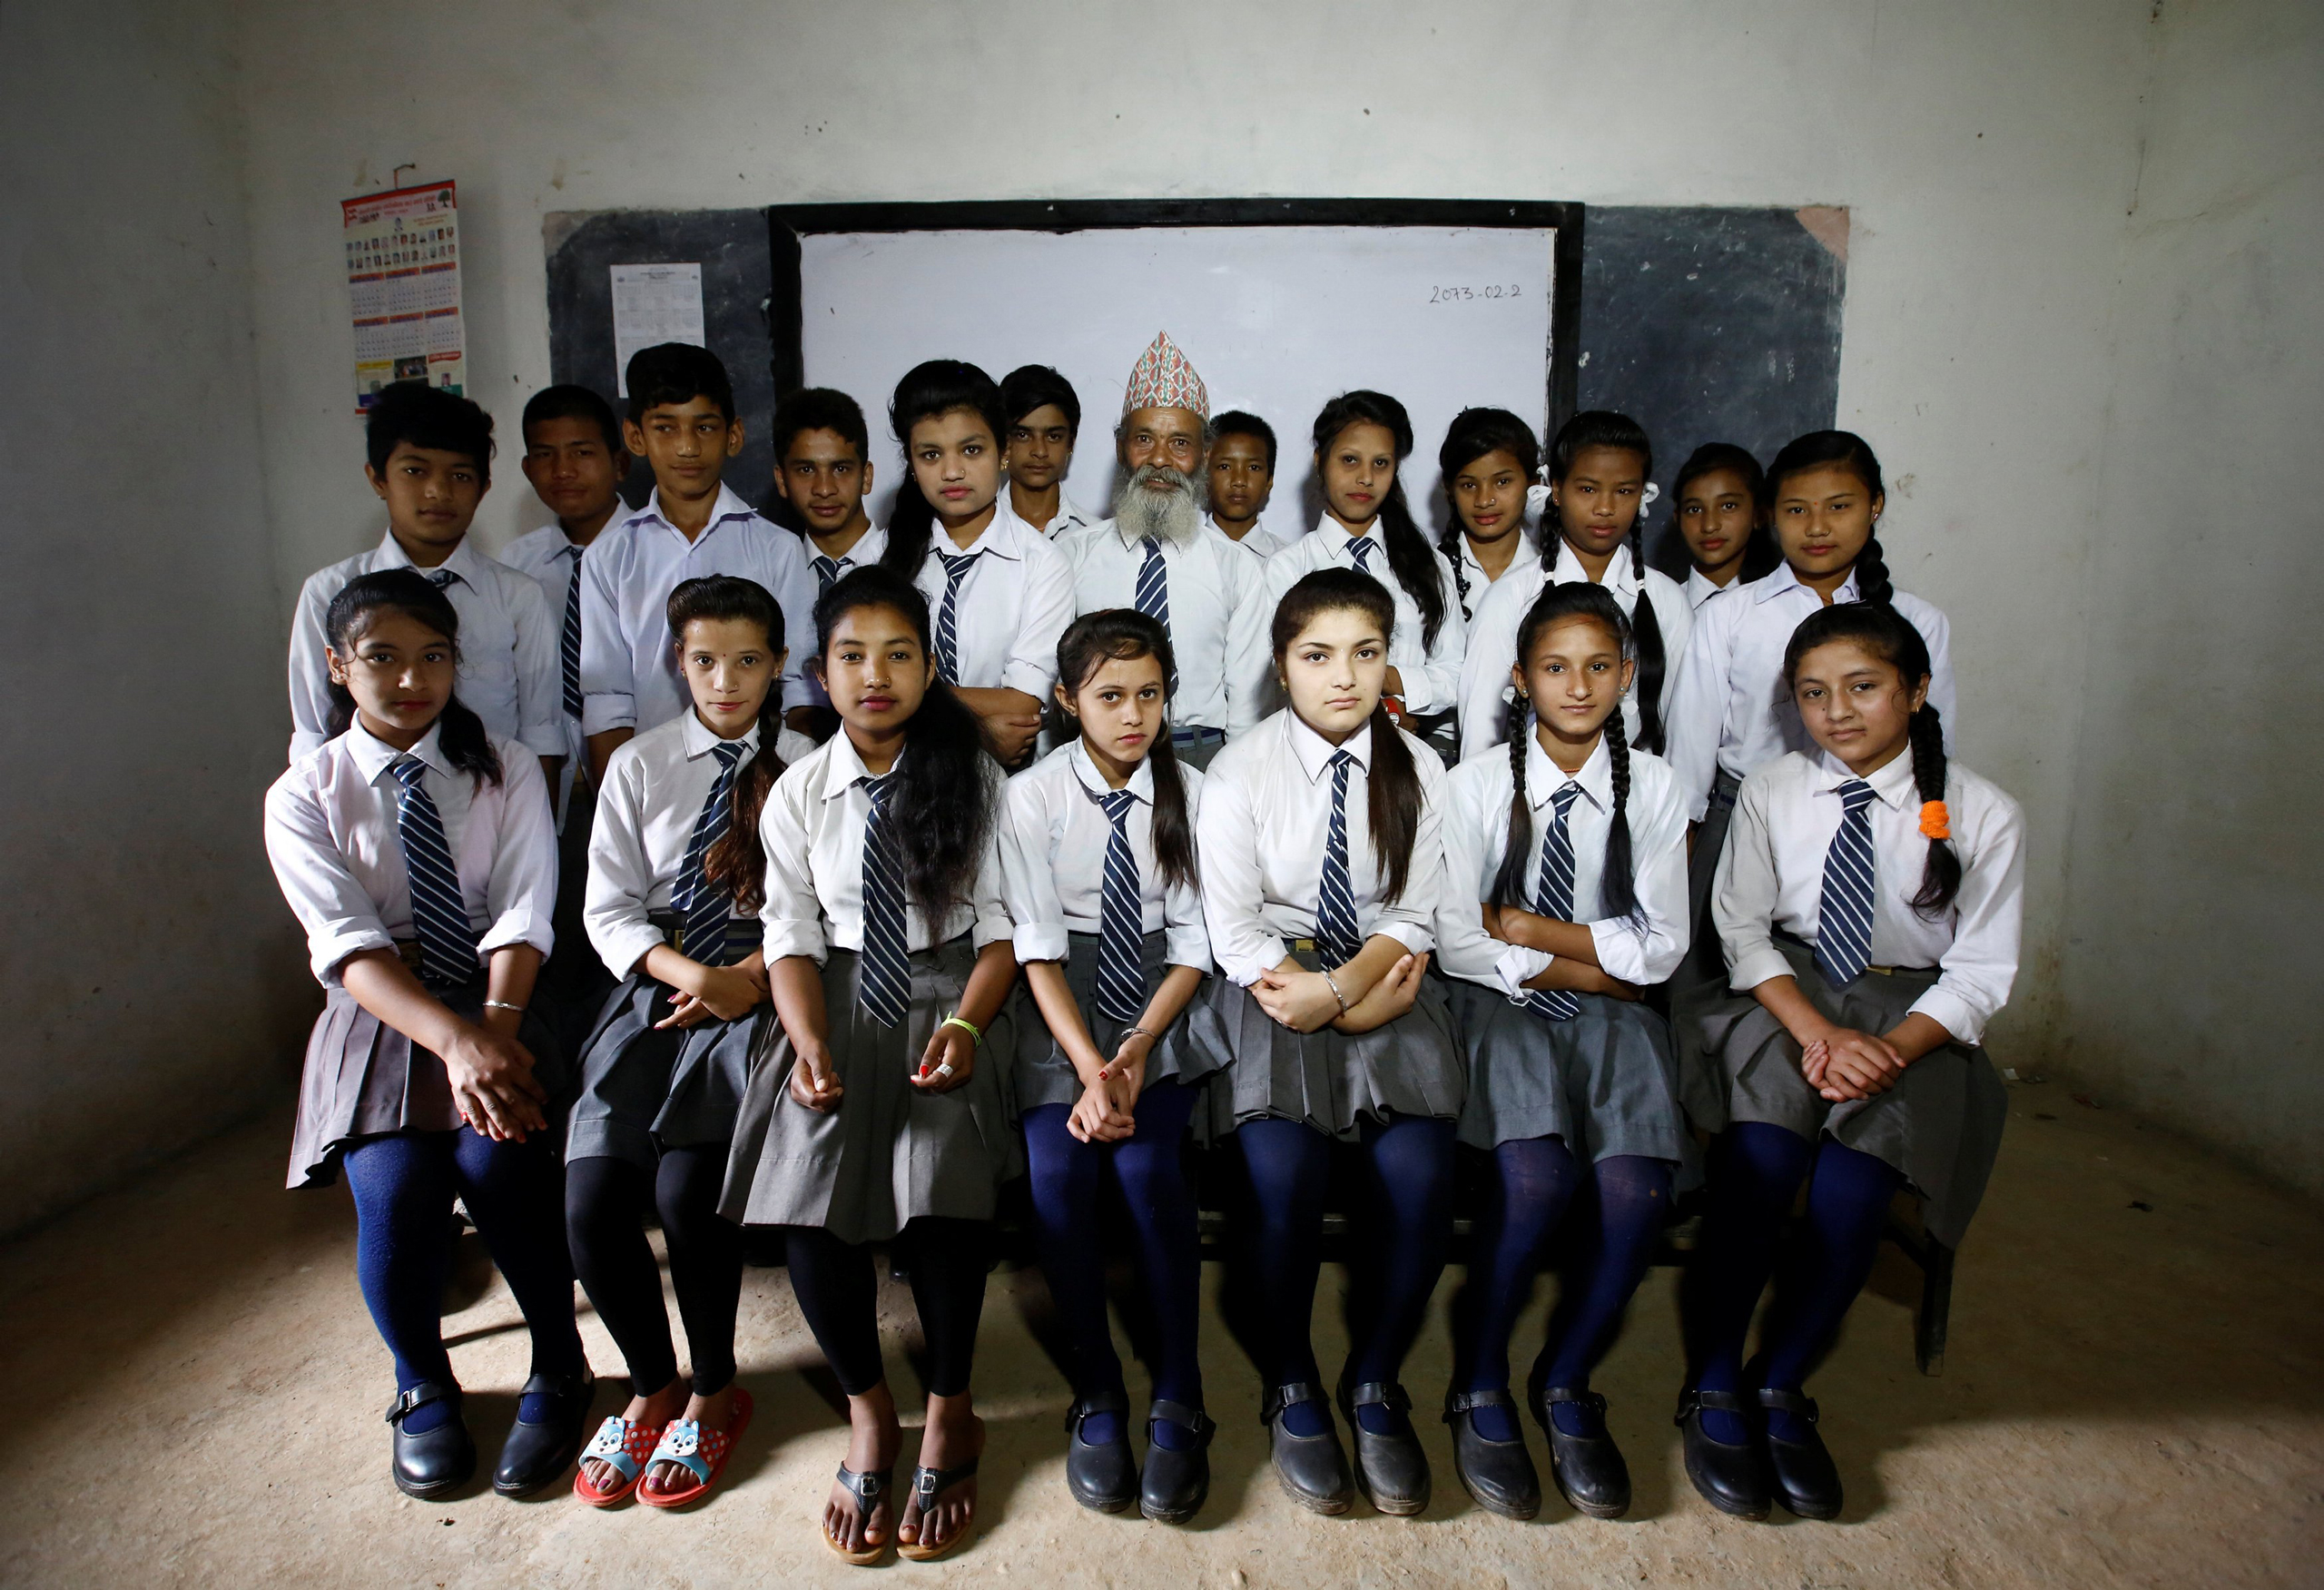 Durga Kami and his classmates pose for a group picture in their classroom at Shree Kala Bhairab Higher Secondary School in Syangja, Nepal, on June 5, 2016.